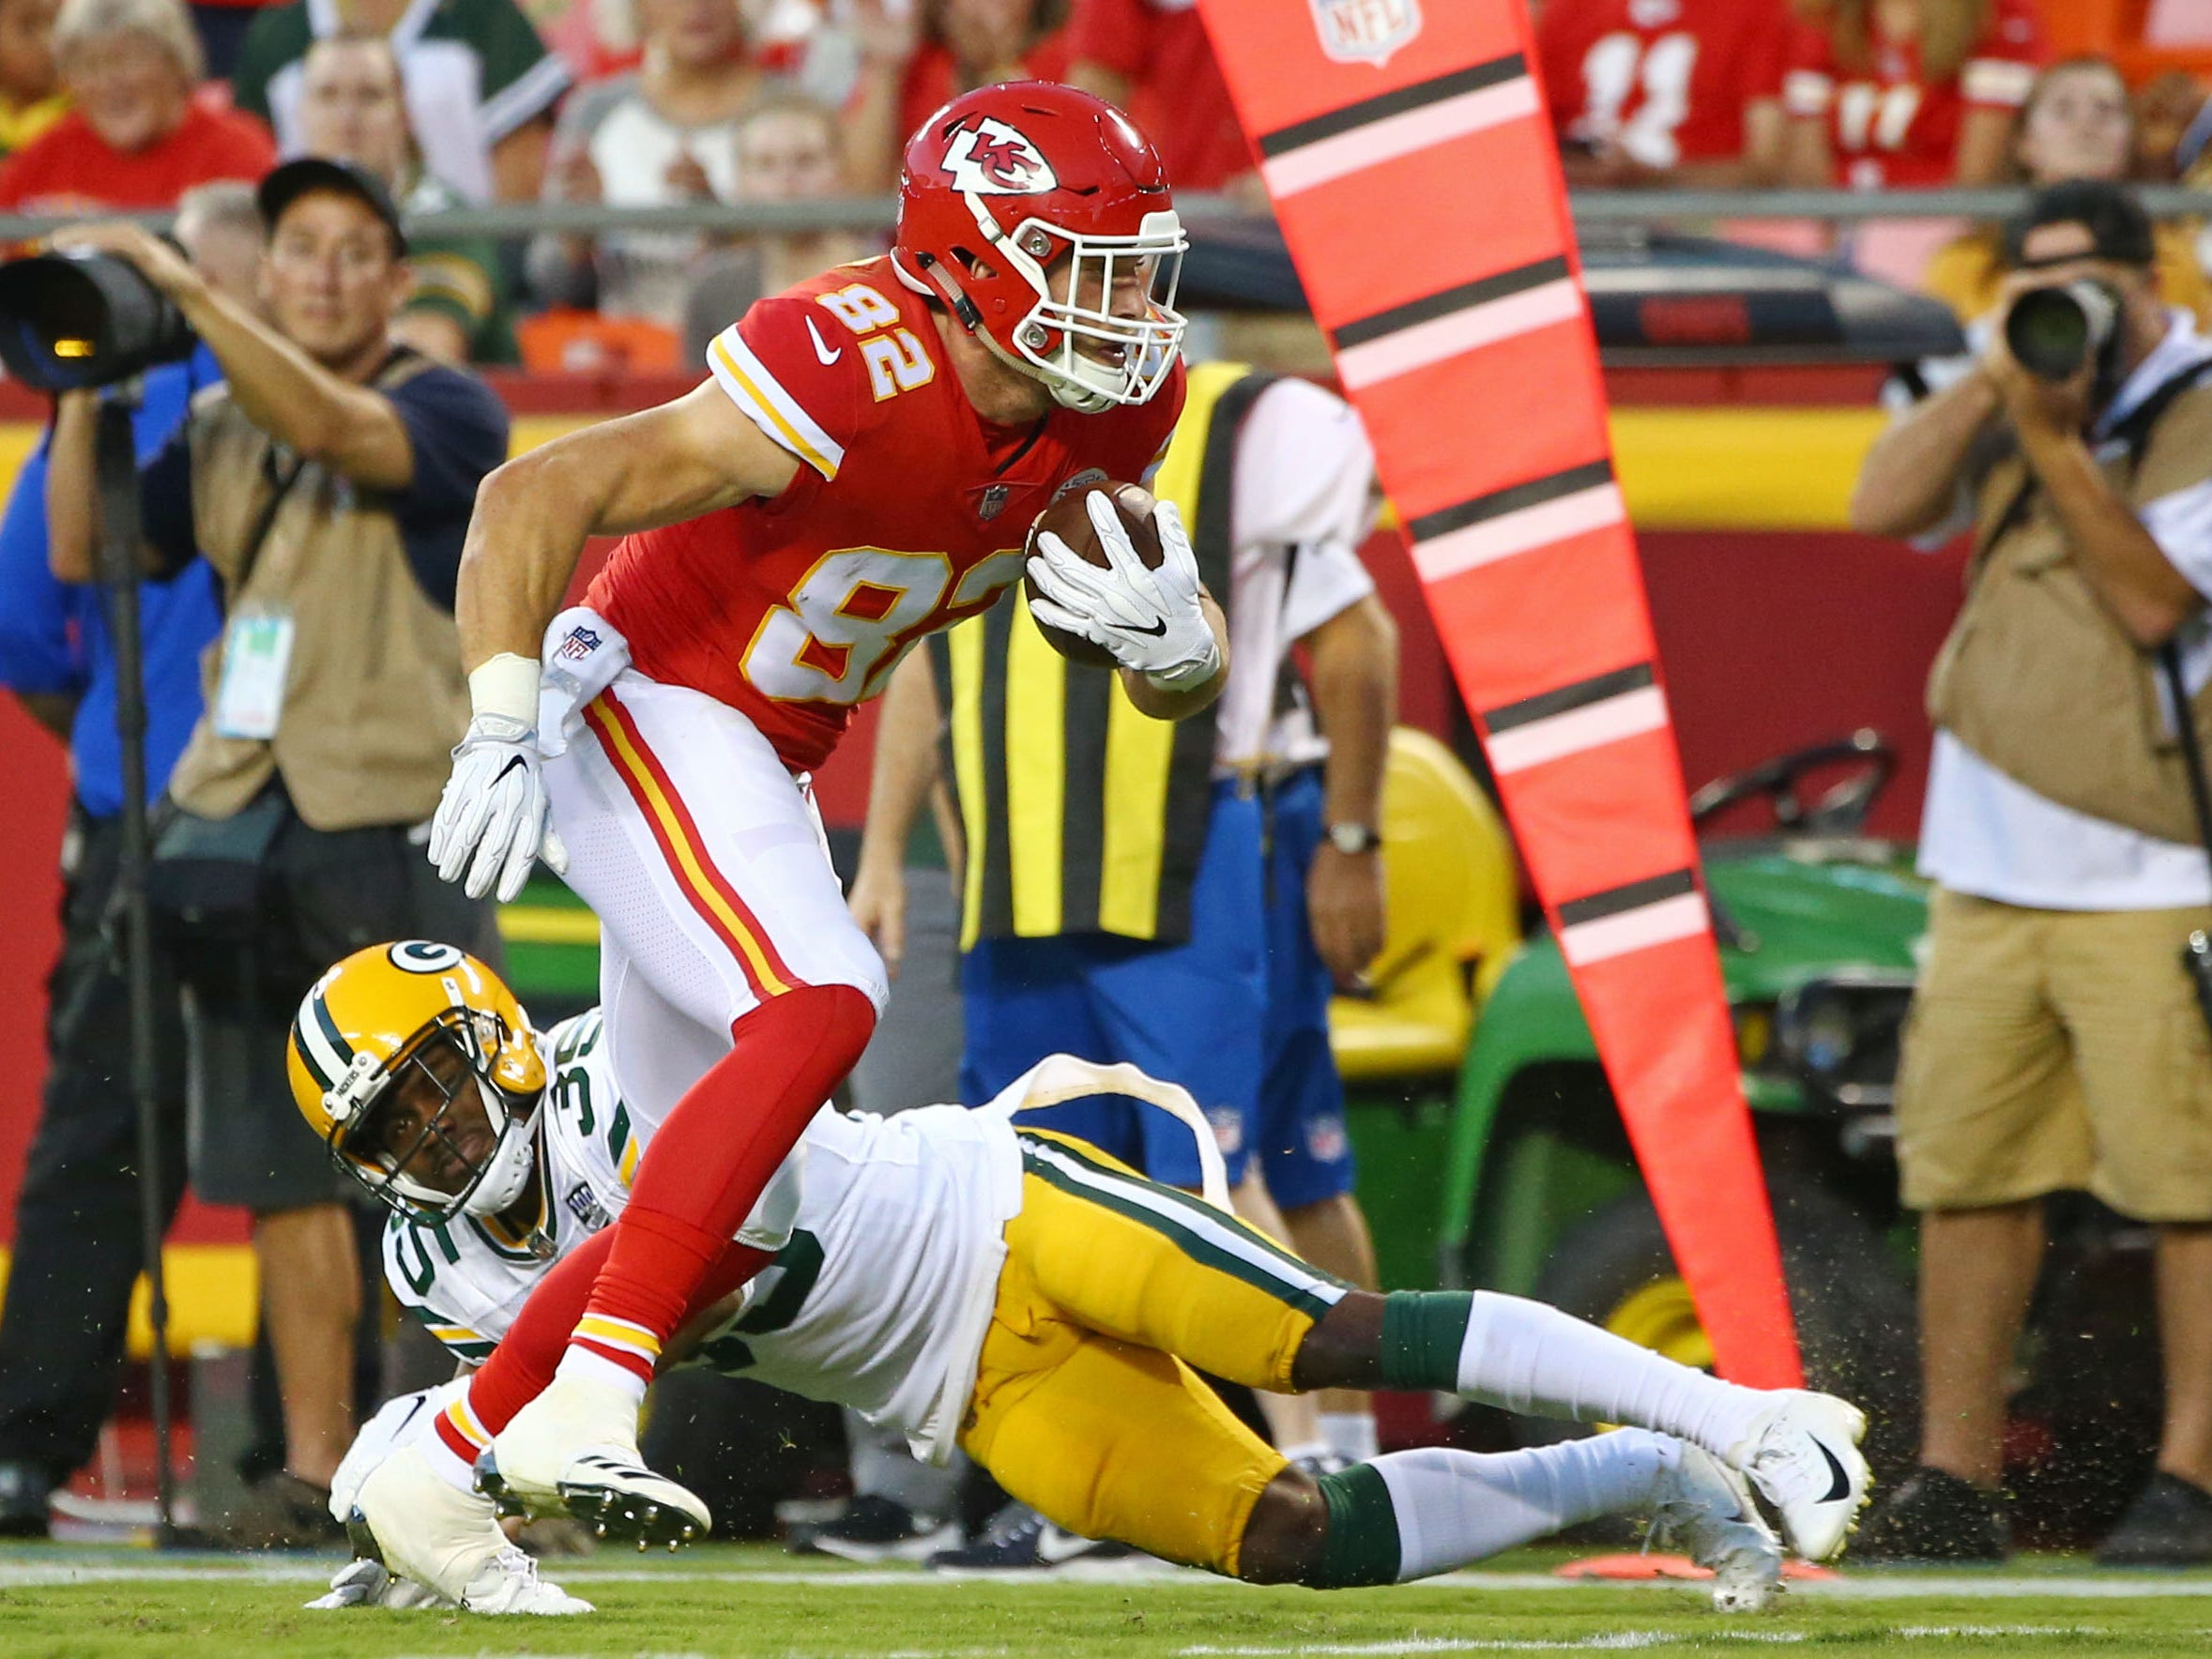 Aug 30, 2018; Kansas City, MO, USA; Kansas City Chiefs tight end Alex Ellis (82) evades Green Bay Packers safety Jermaine Whitehead (35) in the first half at Arrowhead Stadium.